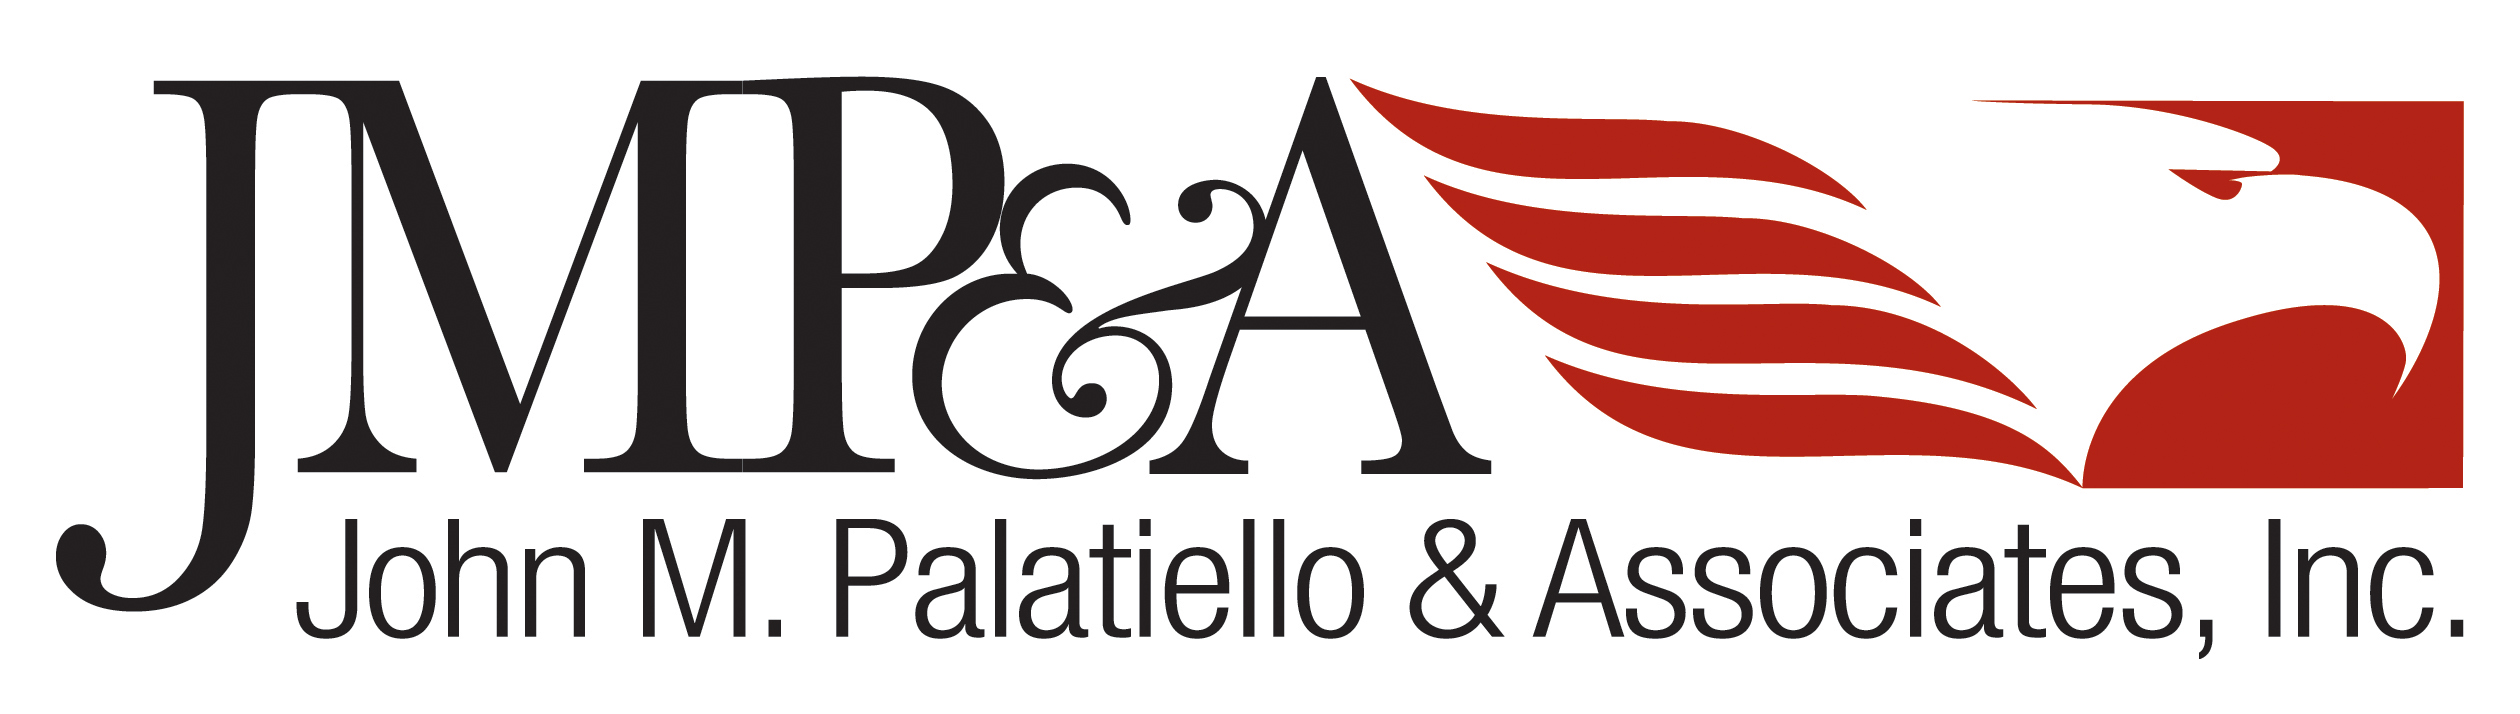 John M. Palatiello & Associates, Inc